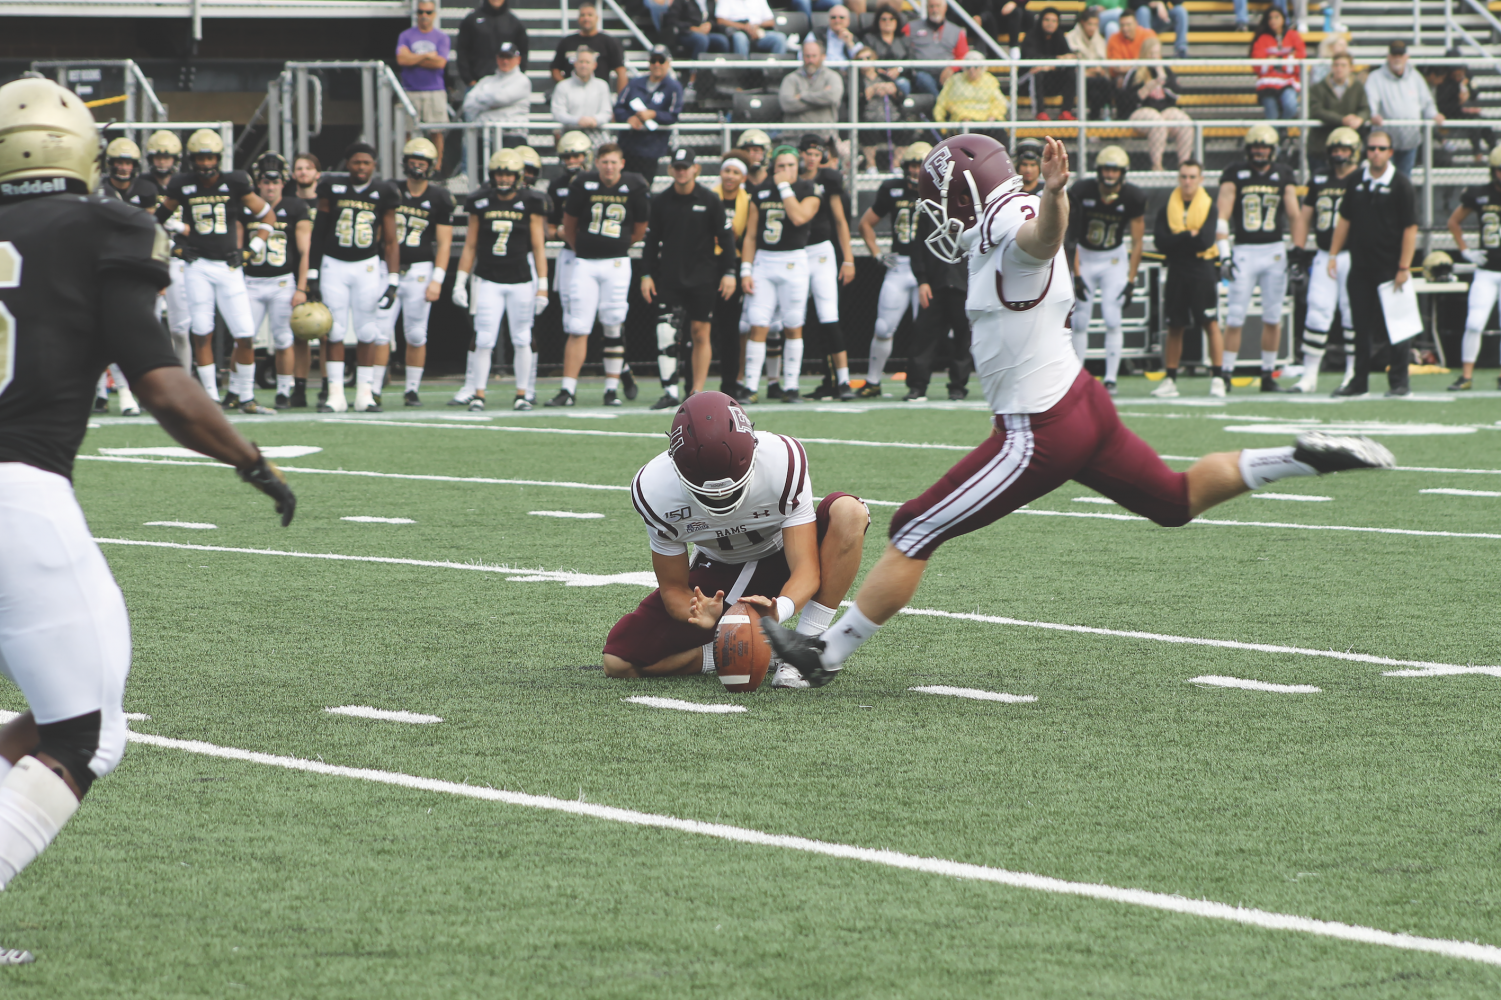 Andrew Mevis, FCRH '21, kicked three field goals against Bryant, two in the second quarter to keep the Rams in contention.